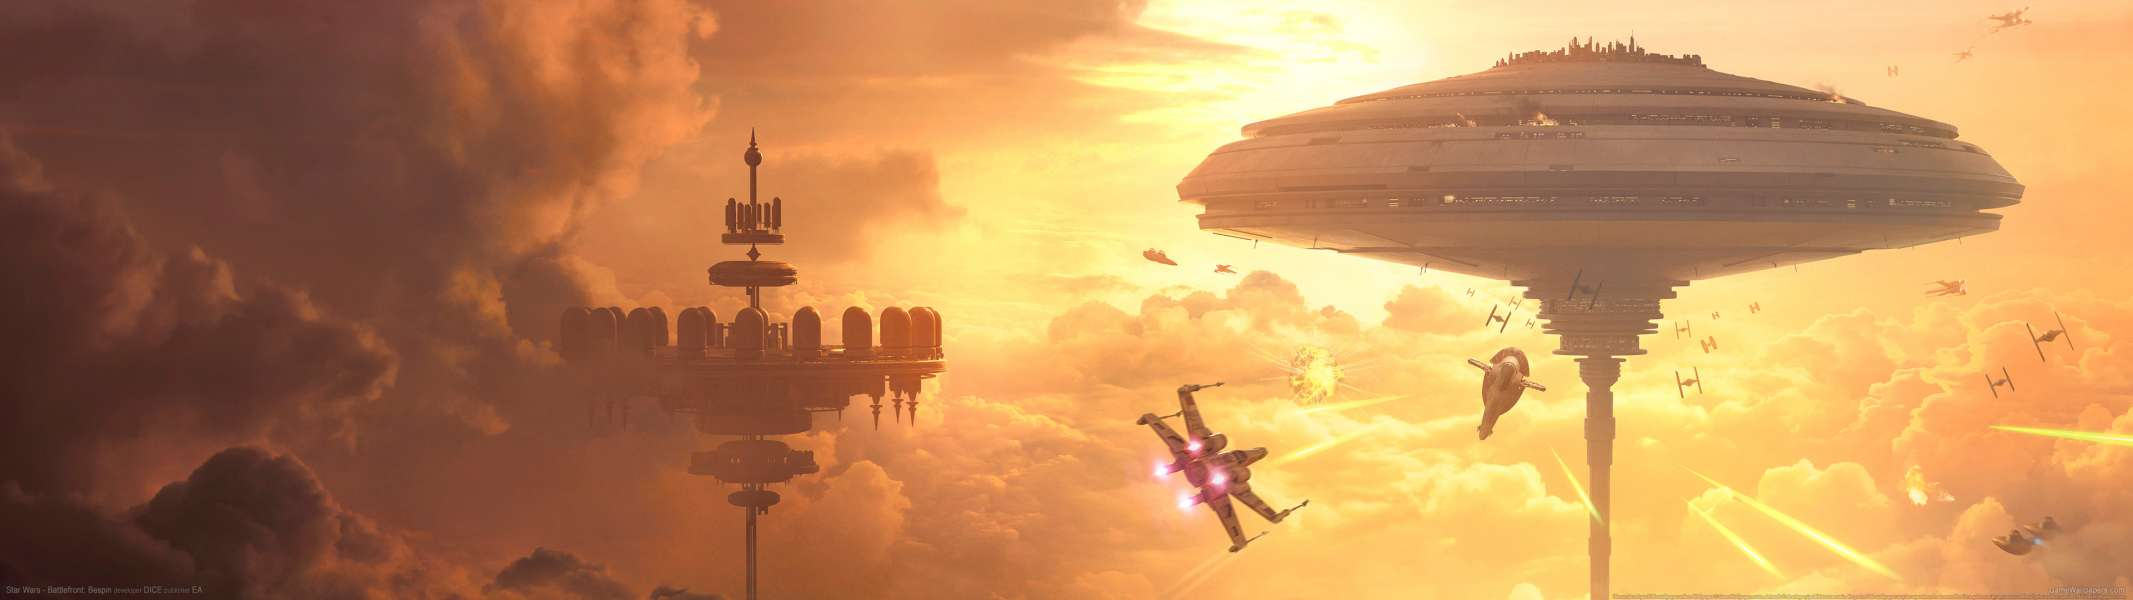 Star Wars - Battlefront: Bespin dual screen fondo de escritorio